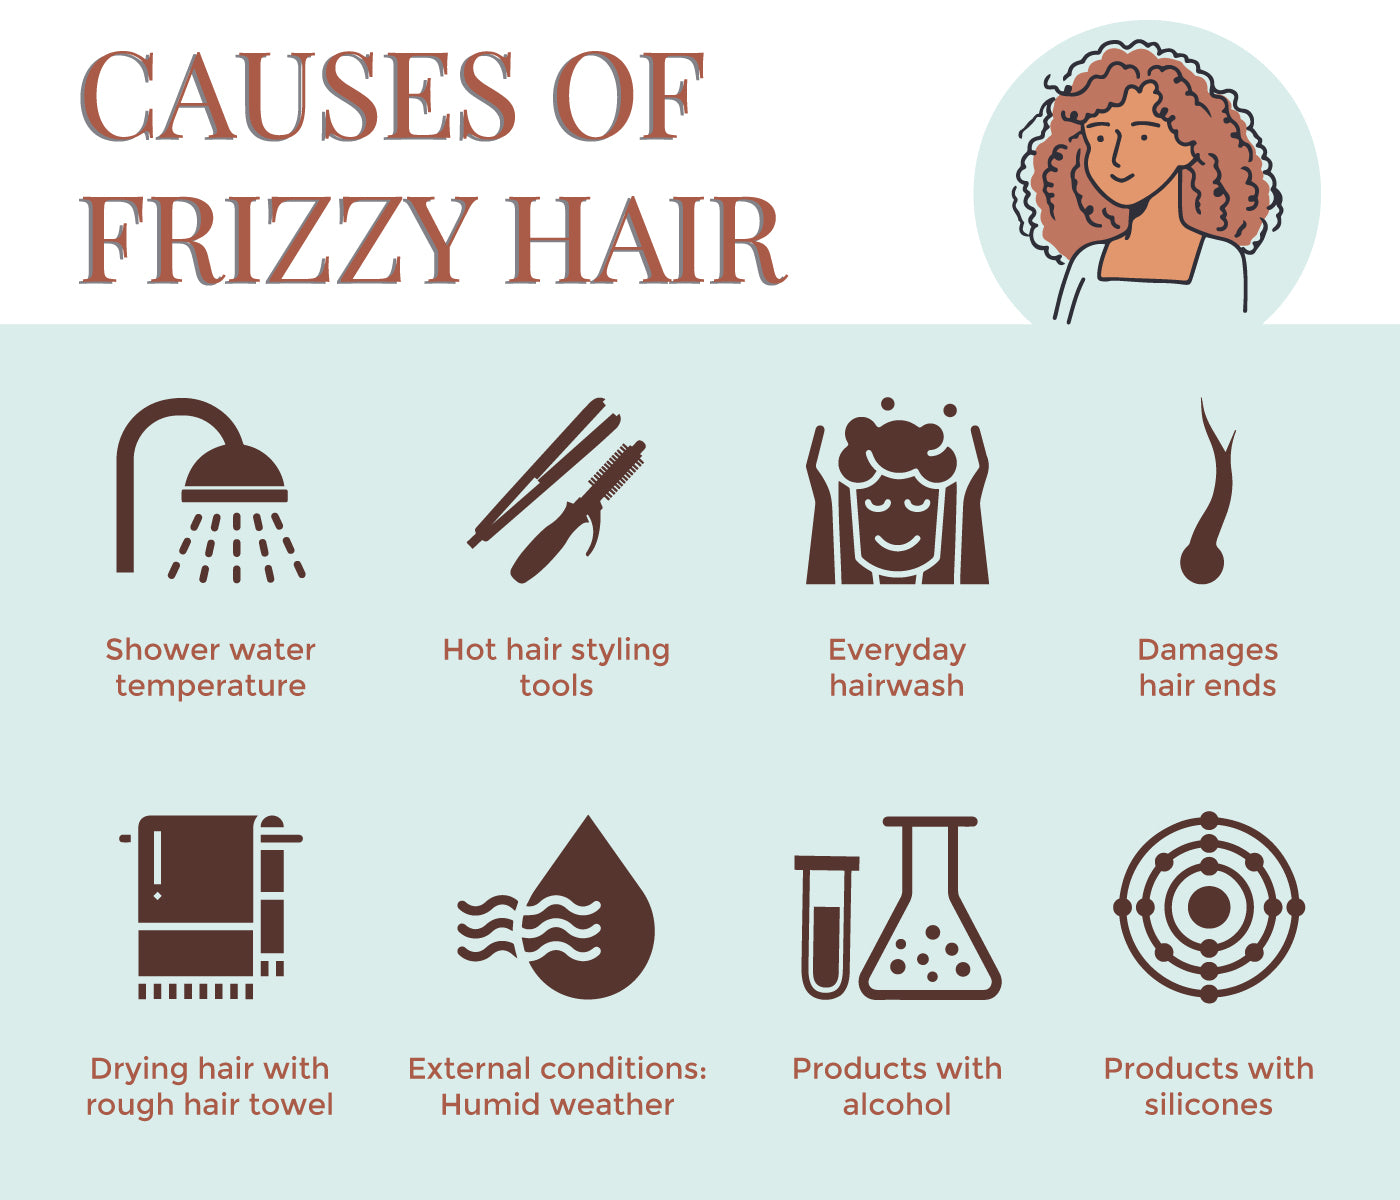 This is an image of causes of Frizzy Hair on www.sublimelife.in